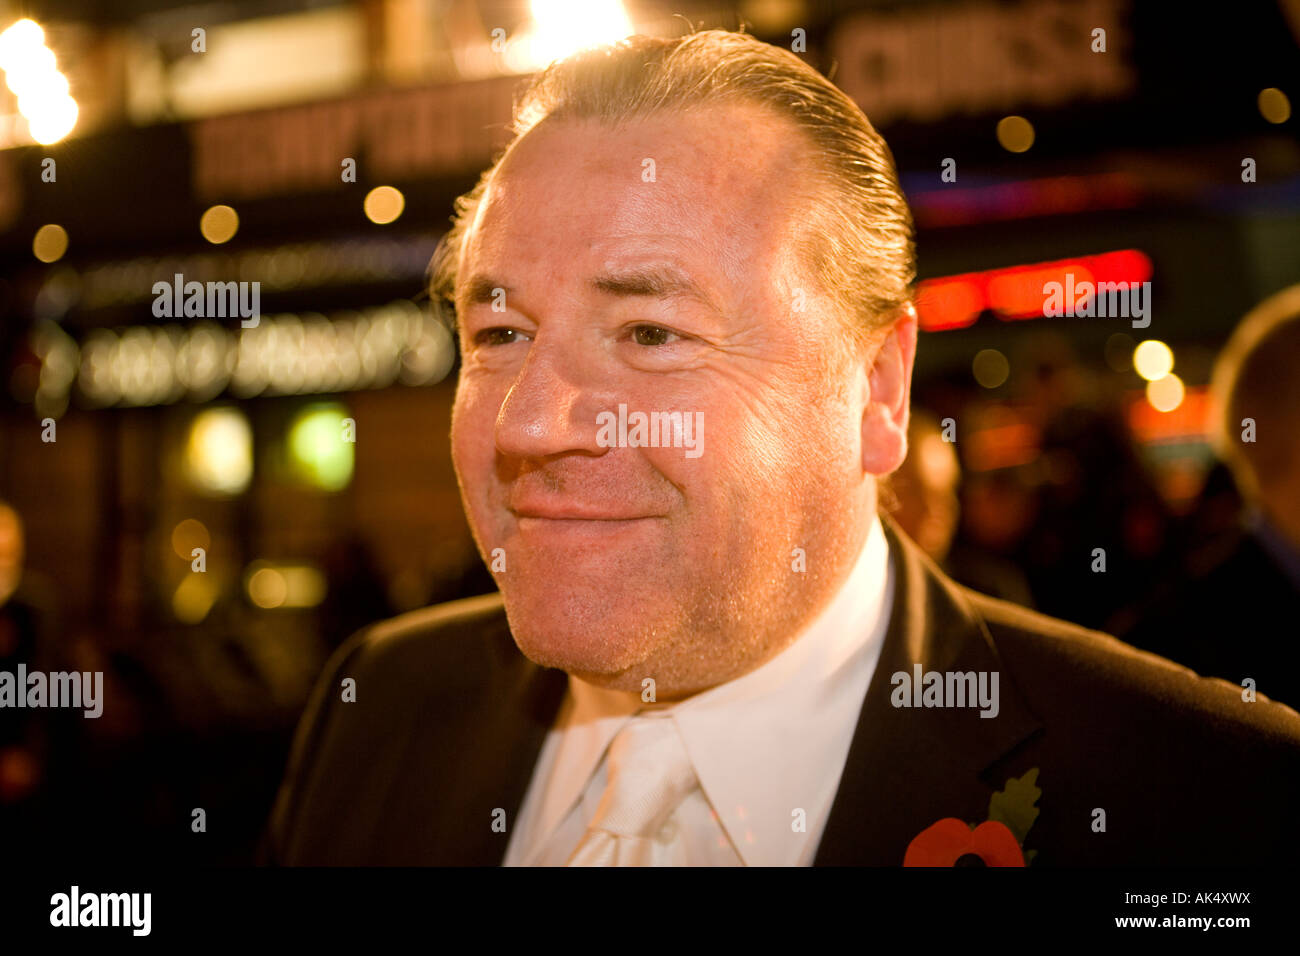 Beo Wulf  - European film premiere London leicester sqaure starring ray winstone - Stock Image